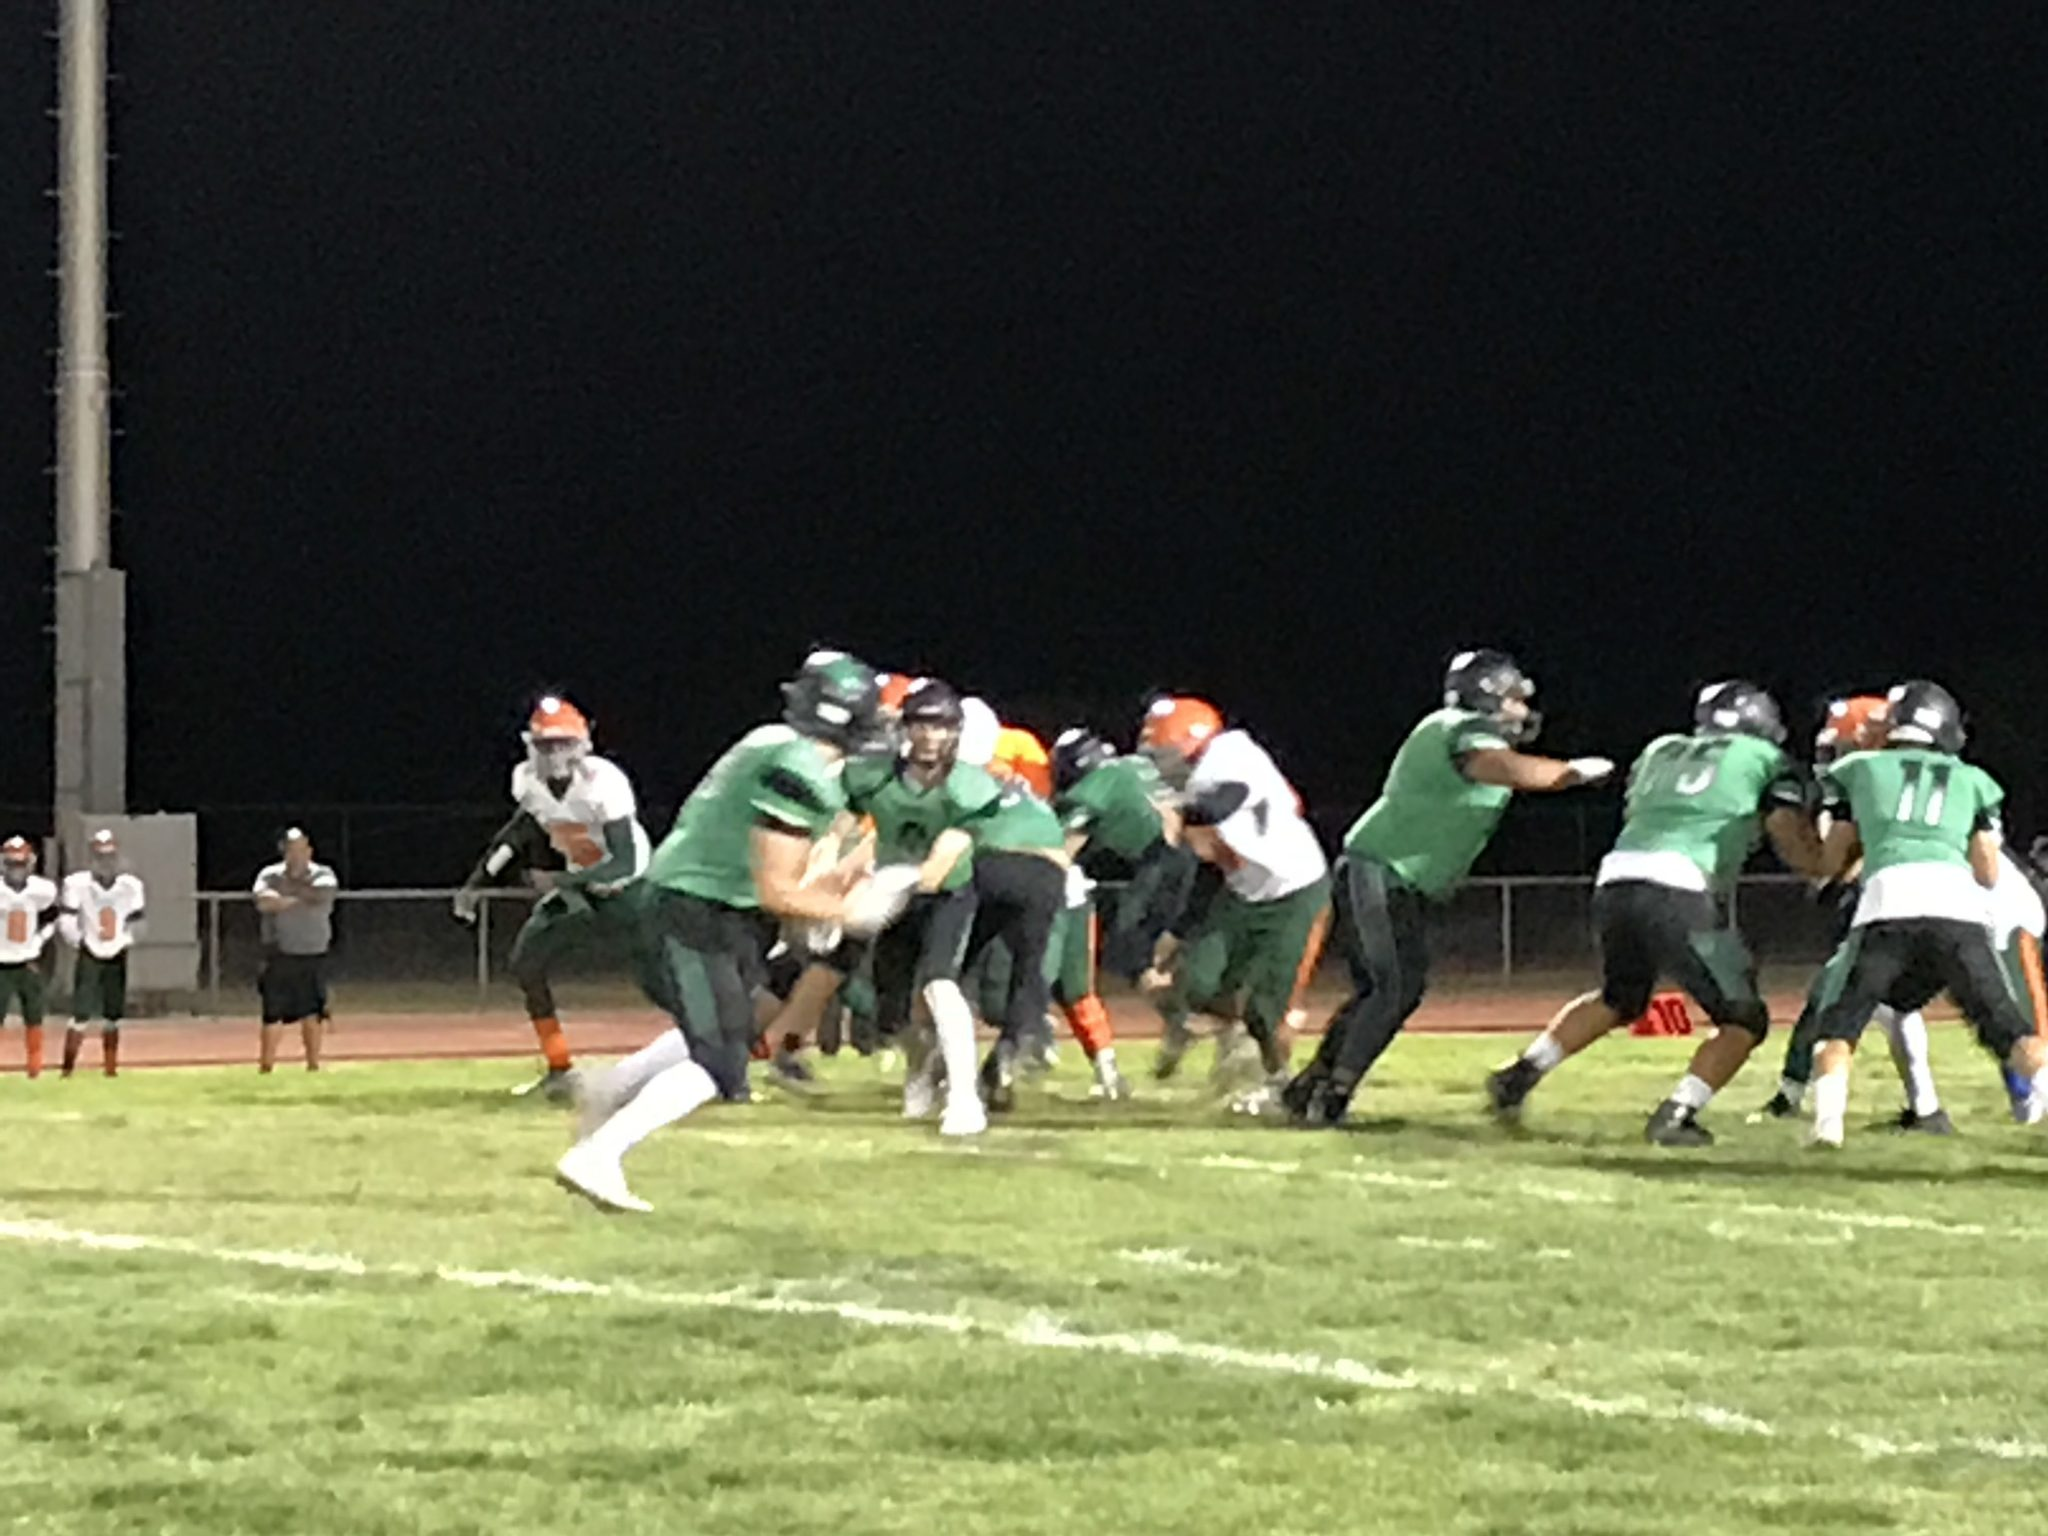 Rattlers big plays bite Bulldogs 46-20 end title hopes